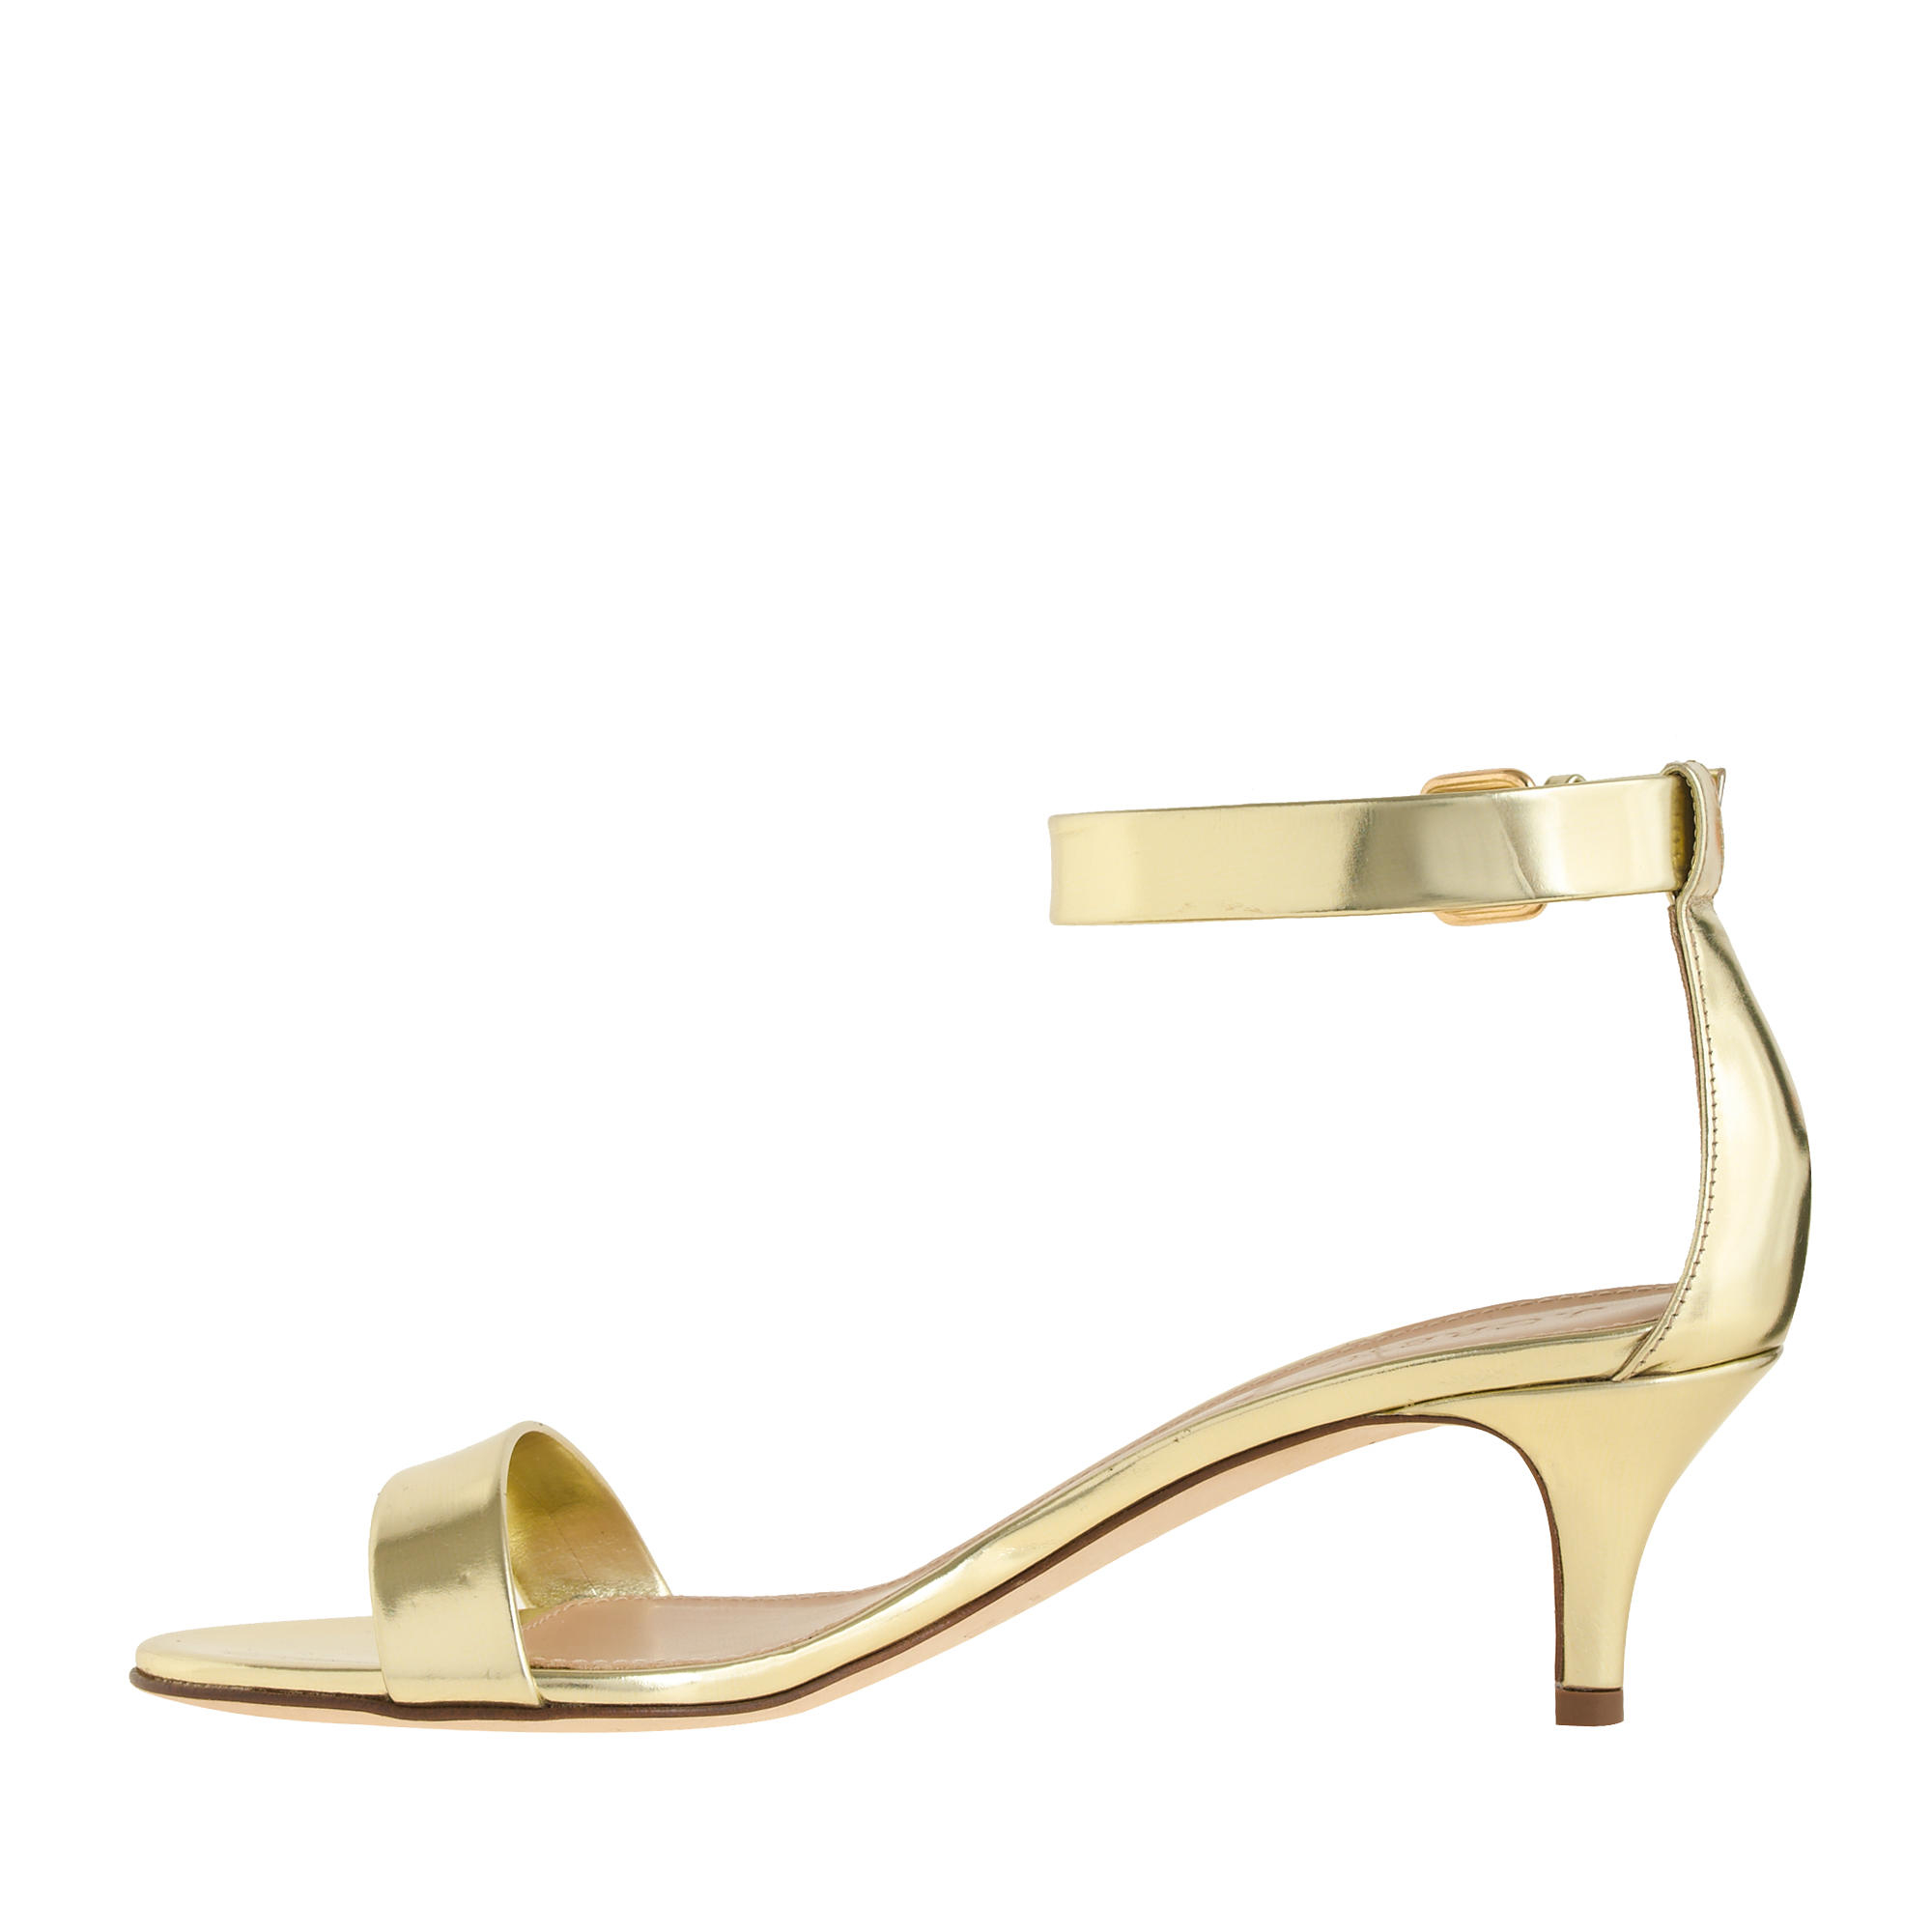 Gold Kitten Heel Sandals - Is Heel